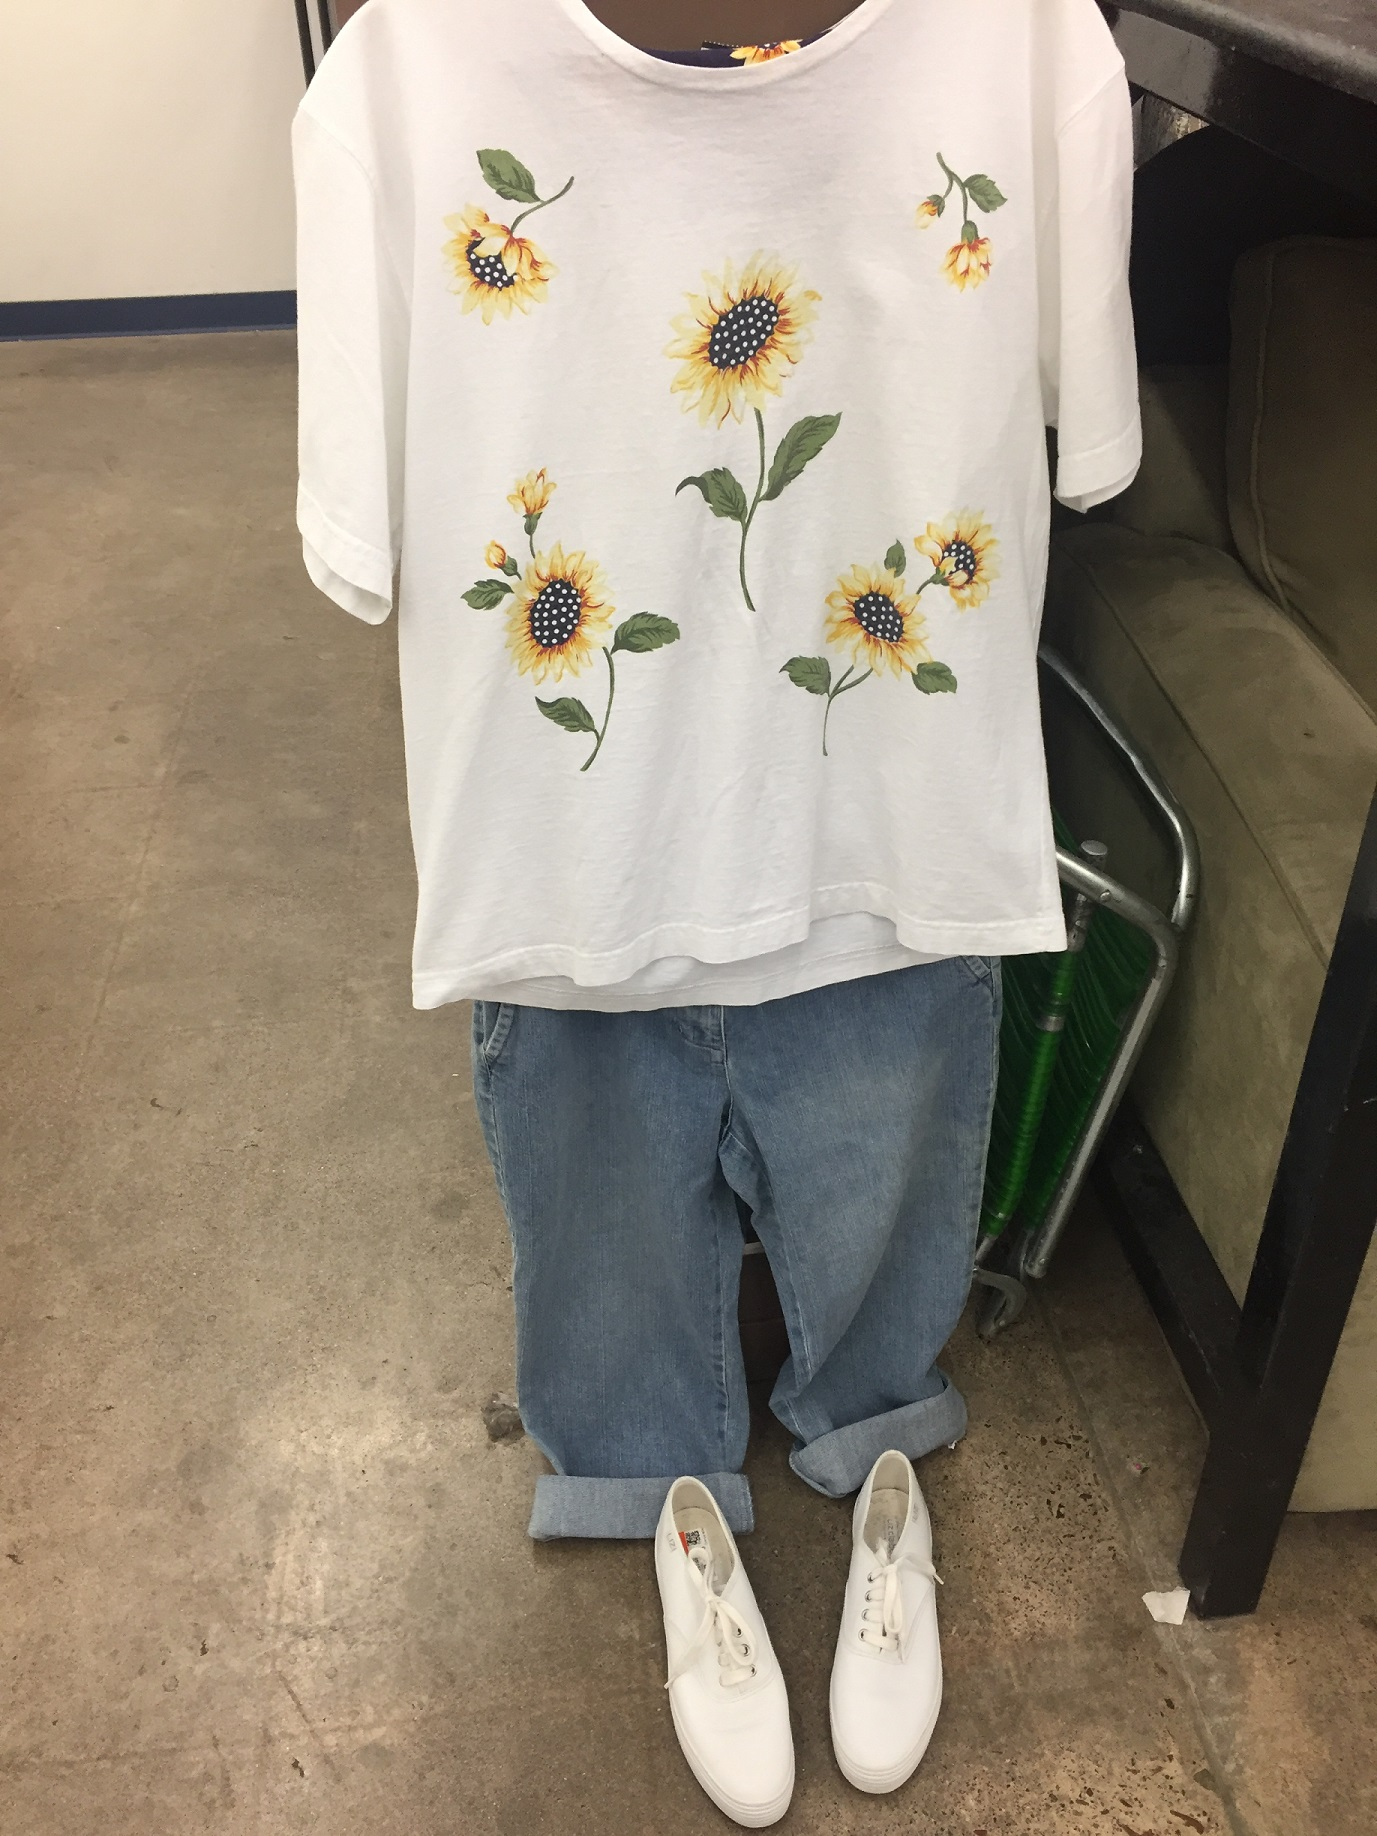 This+outfit+gives+off+a+gardener+vibe+to+me%2C+and+is+super+comfortable.+The+shirt+costs+%244.99%2C+the+pants+cost+%249.99%2C+and+the+shoes+cost+%247.99%2C+bringing+the+whole+outfit+to+%2422.97.